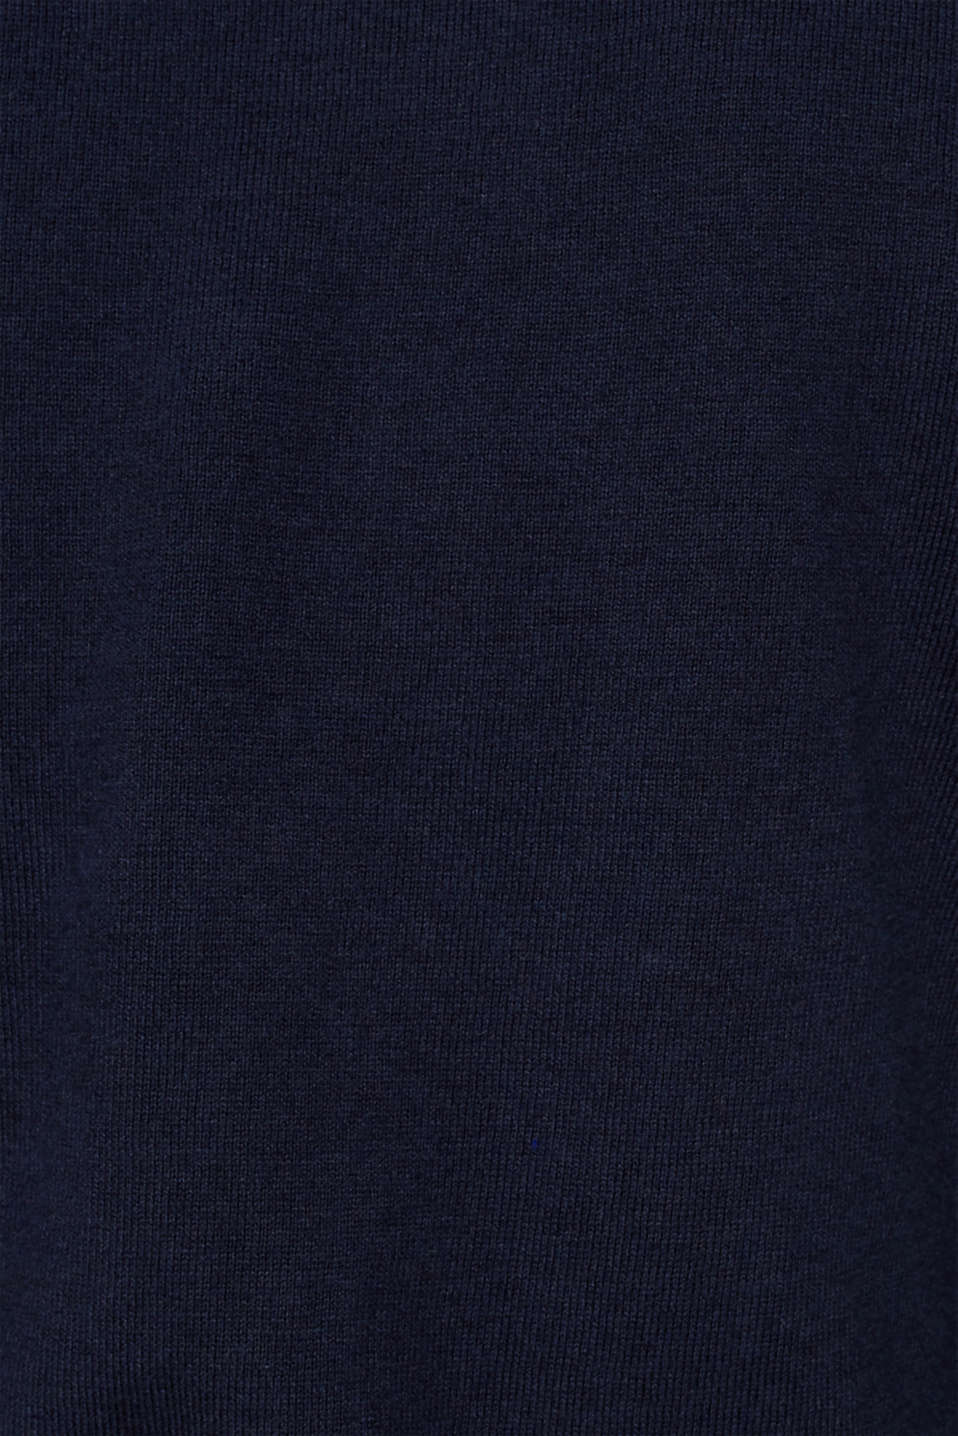 With cashmere: fine knit polo neck jumper, NAVY, detail image number 3